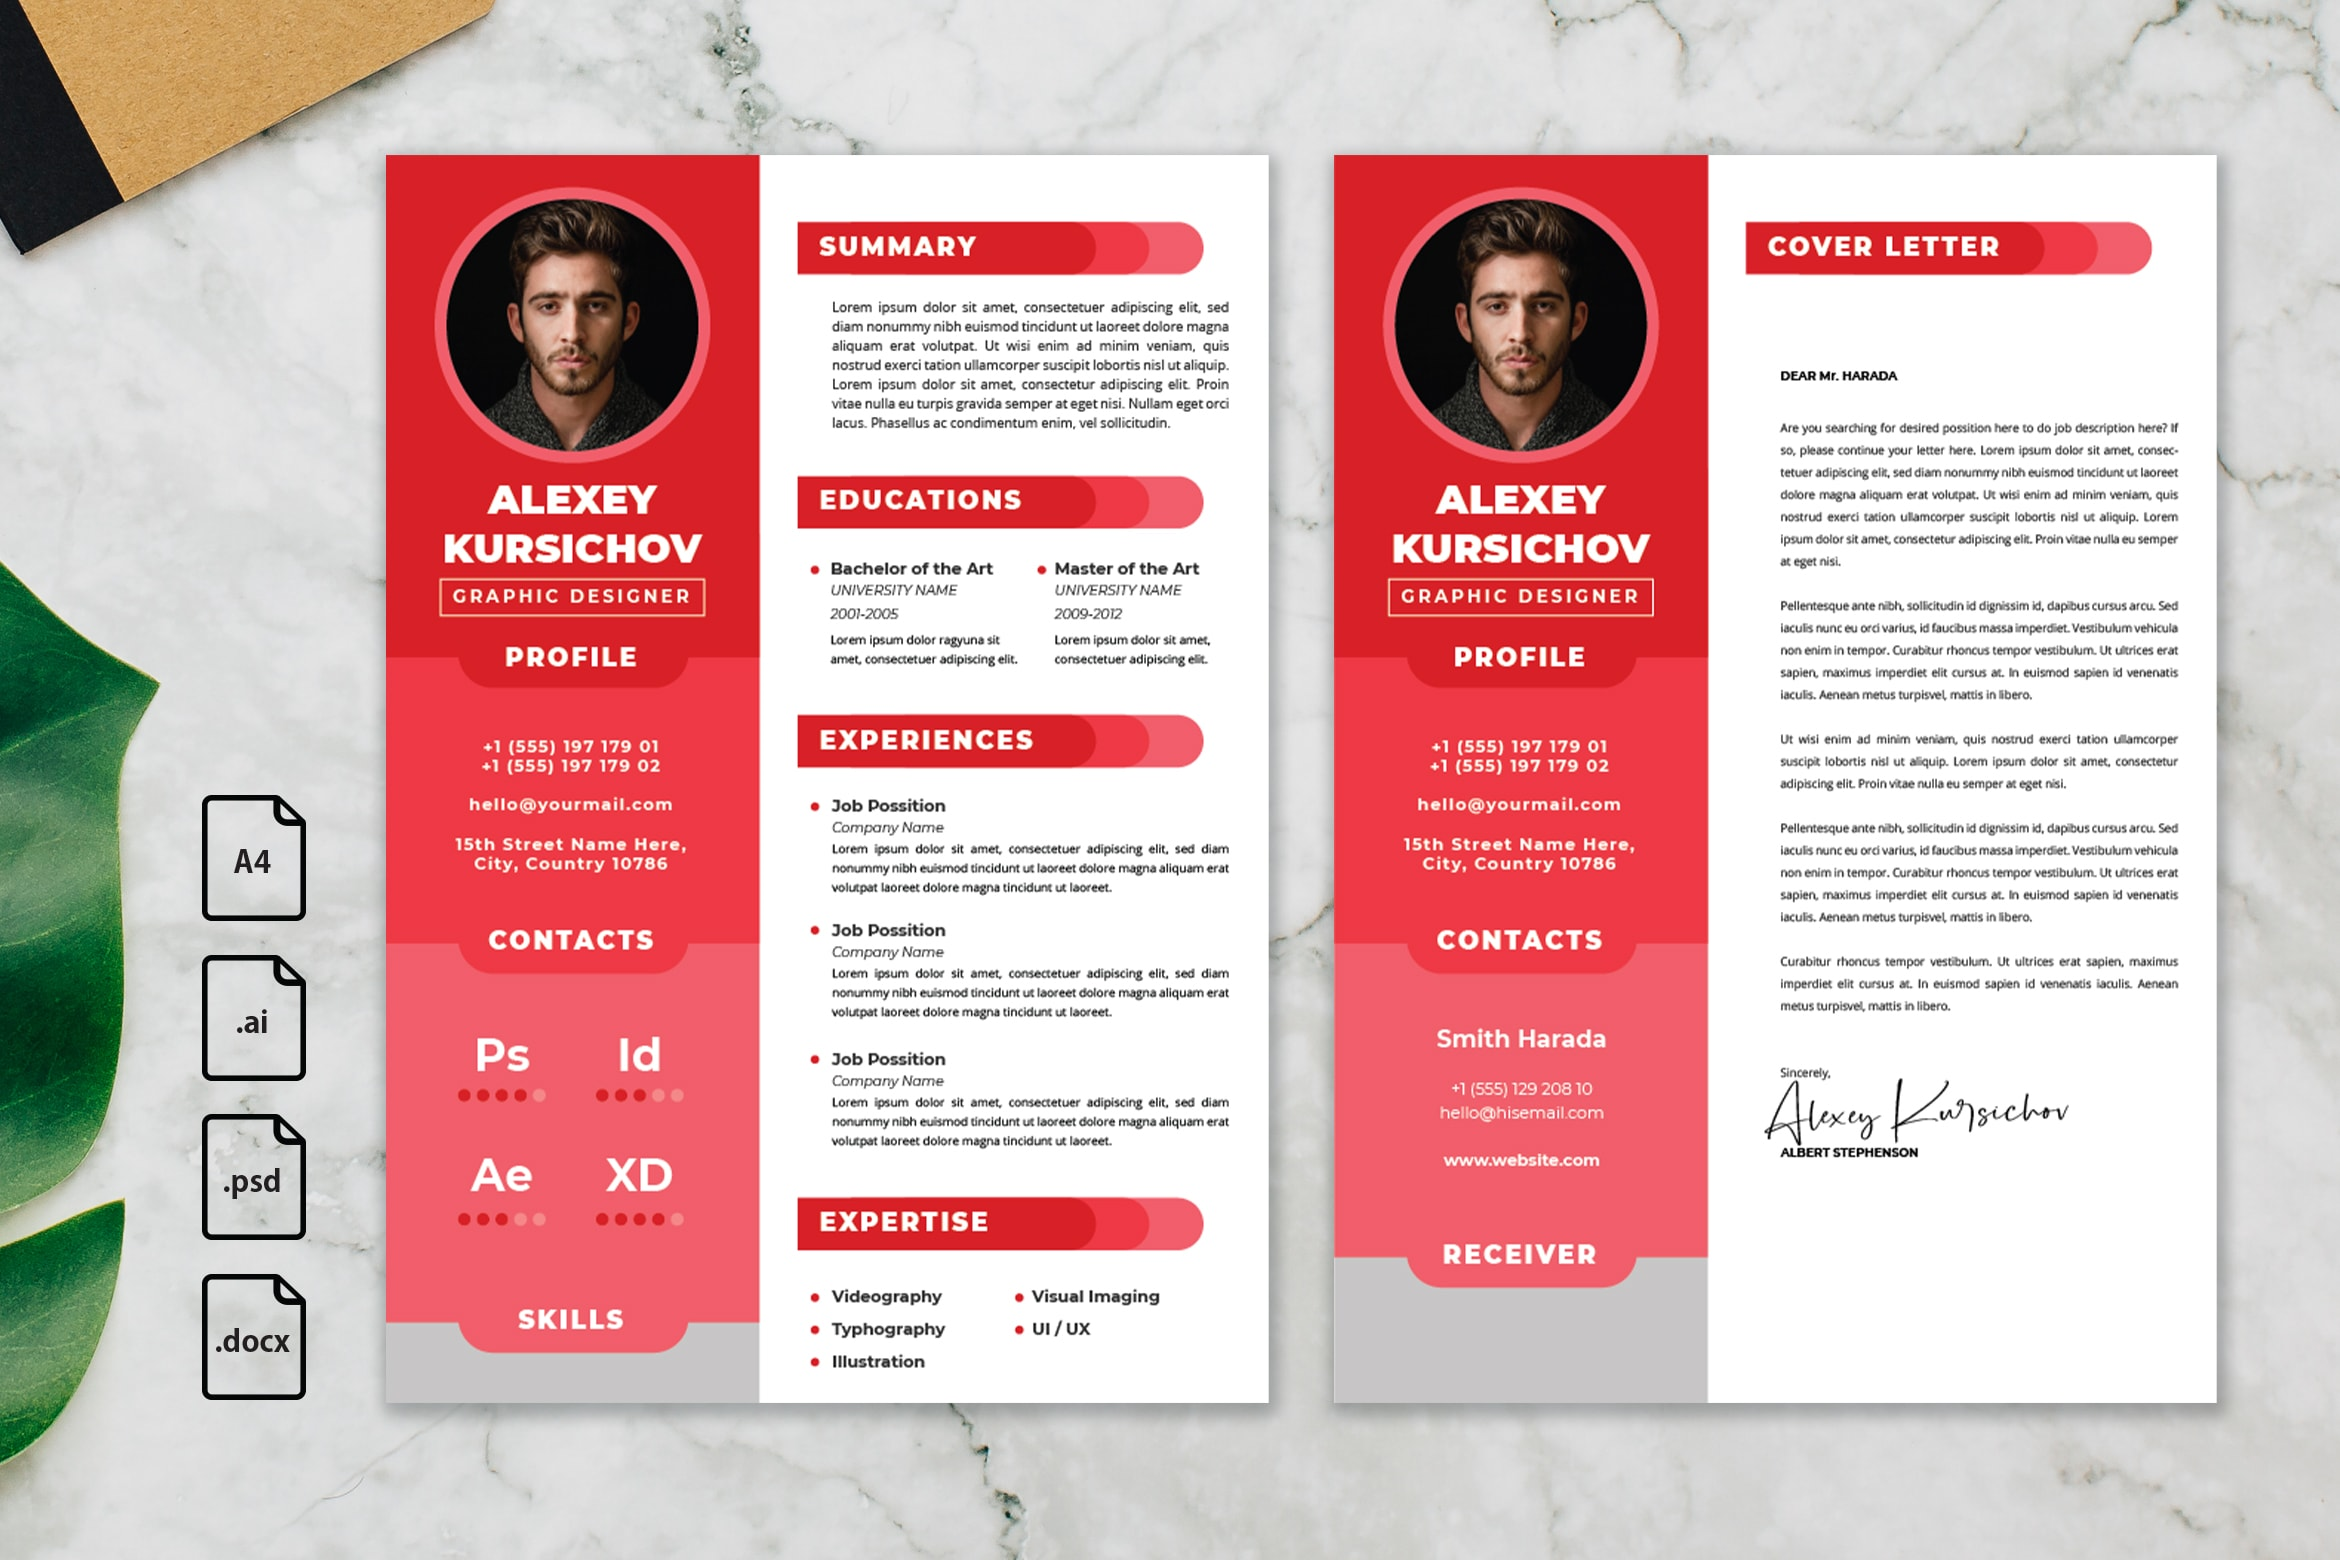 CV Resume – Graphic Designer Profile 23